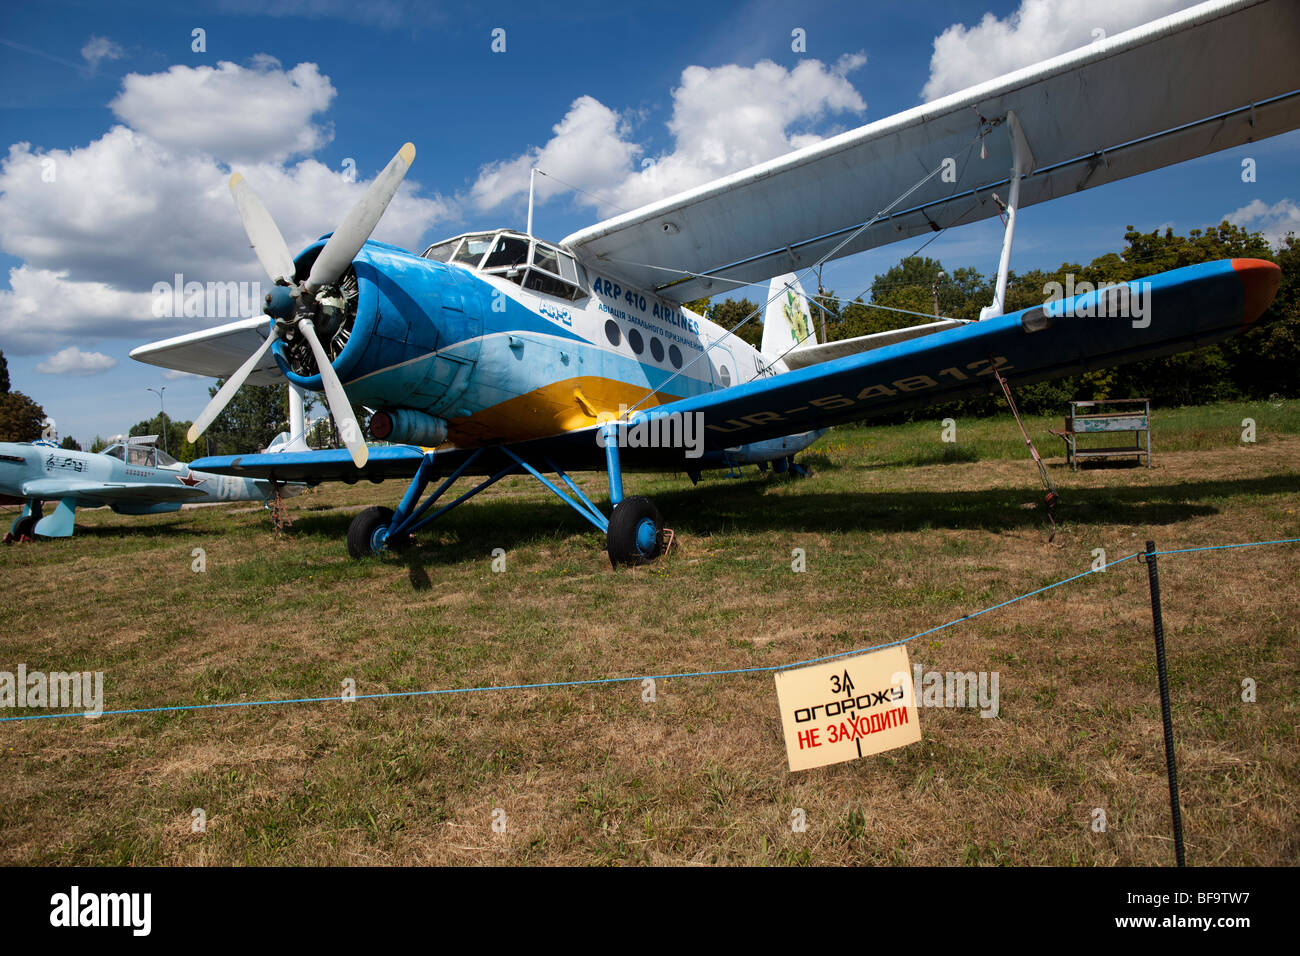 Antonov An-2 (Colt), the biggest  single-engined biplane of the world in the Ukrainian aviation museum in Kiev-Zhulyany. - Stock Image